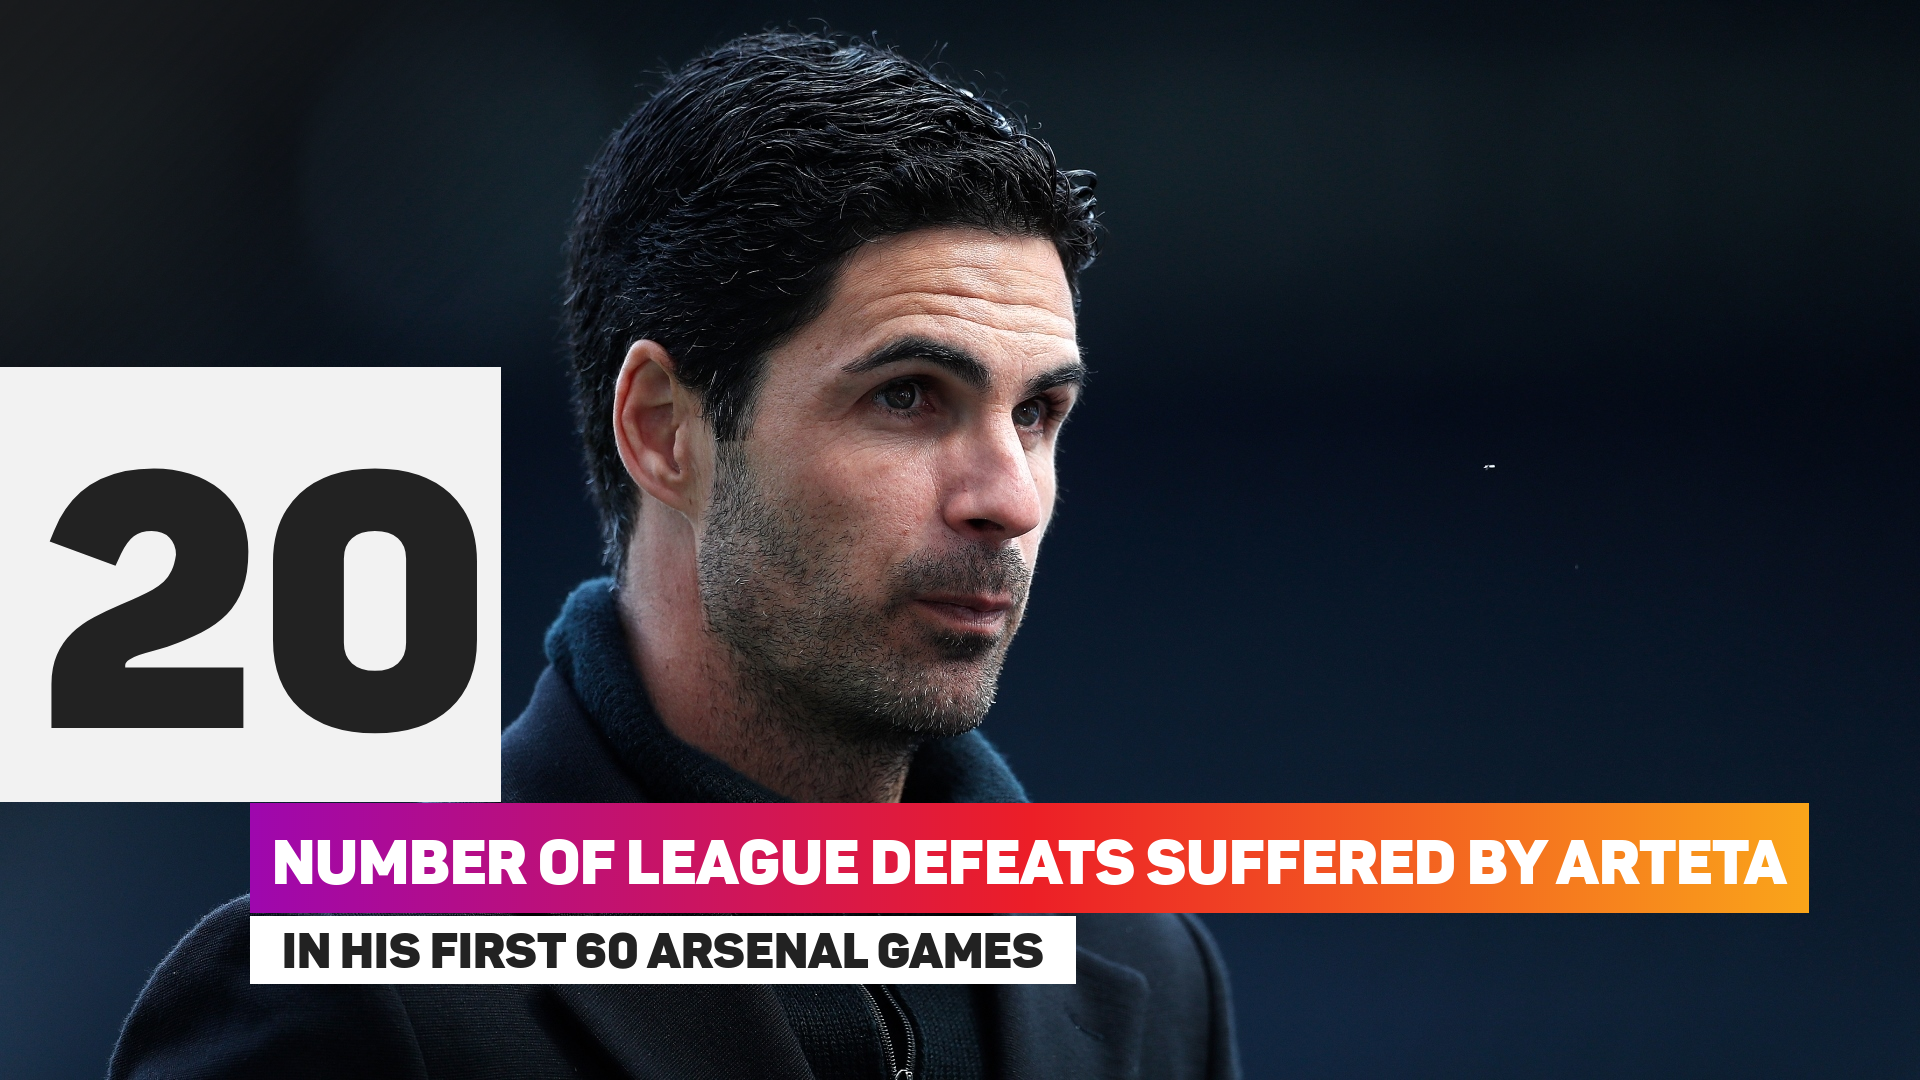 Mikel Arteta has lost 20 of his 60 league games in charge of Arsenal